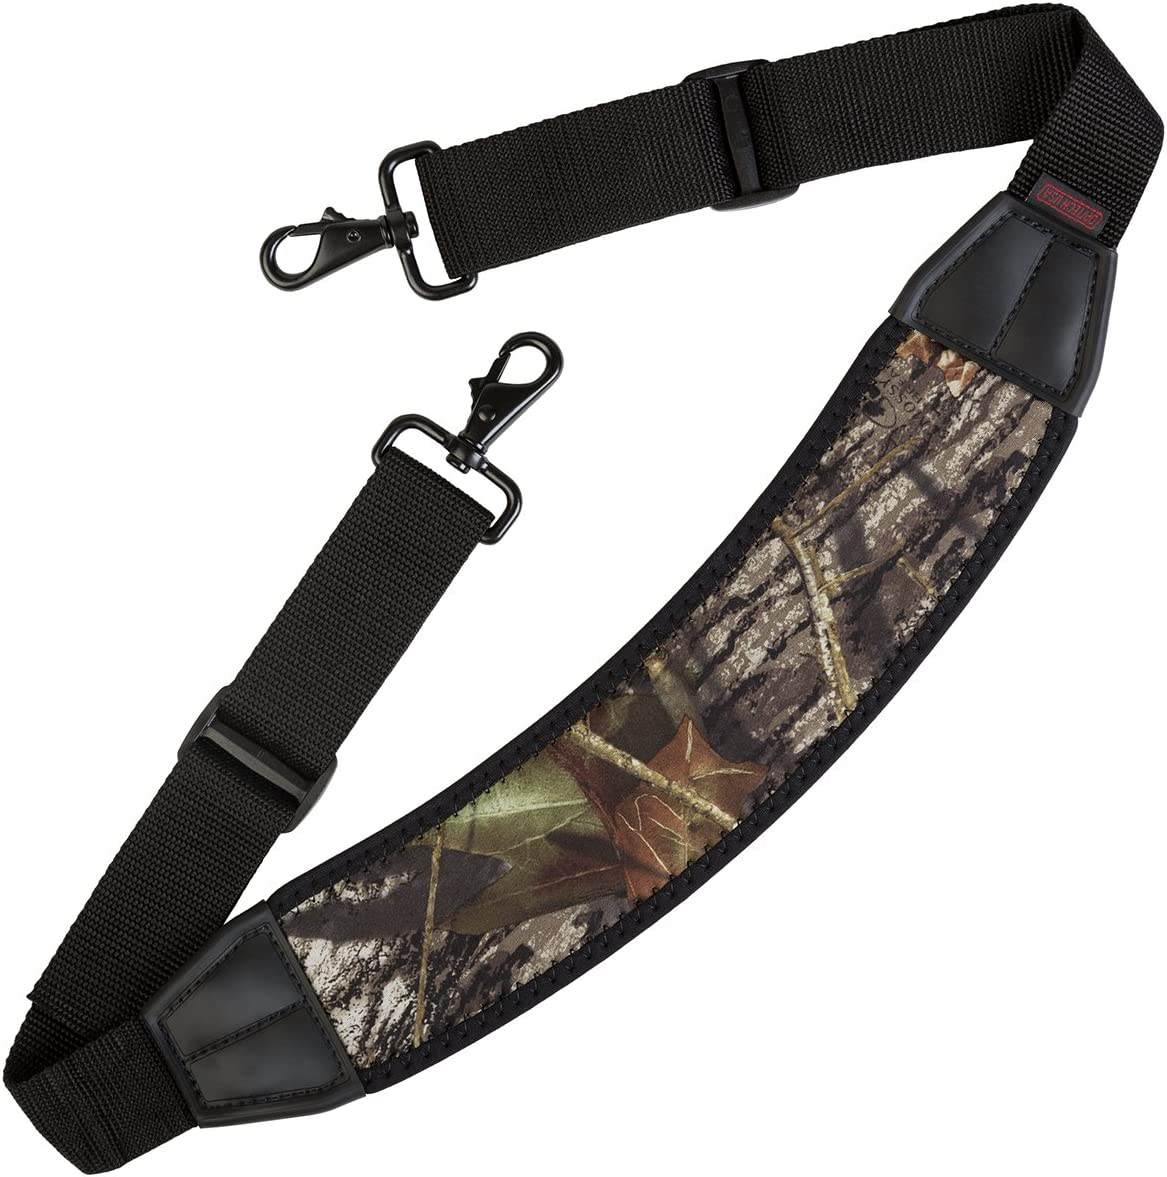 OP/TECH USA Op/Tech, Nature, HC S.O.S. Curve Strap for bags, briefcases and luggage (neoprene) (0910312)